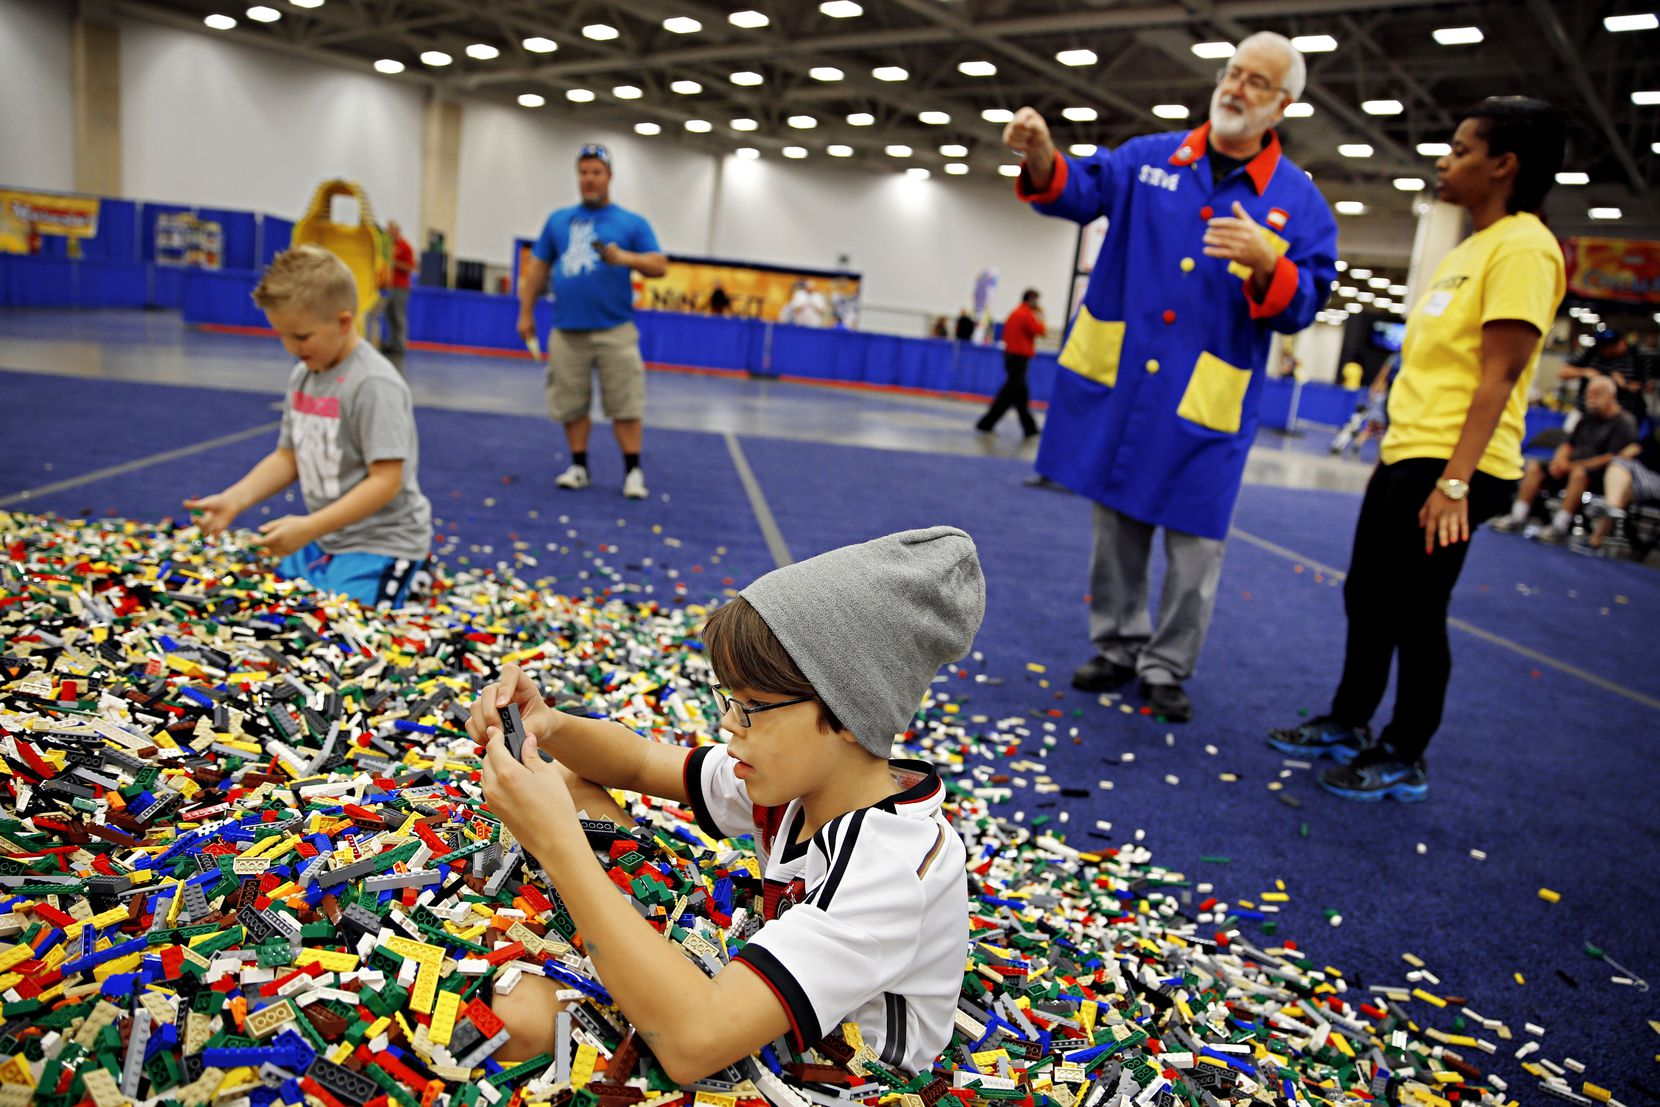 Saturday and Sunday at the Irving Convention Center, kids will be in LEGO heaven.